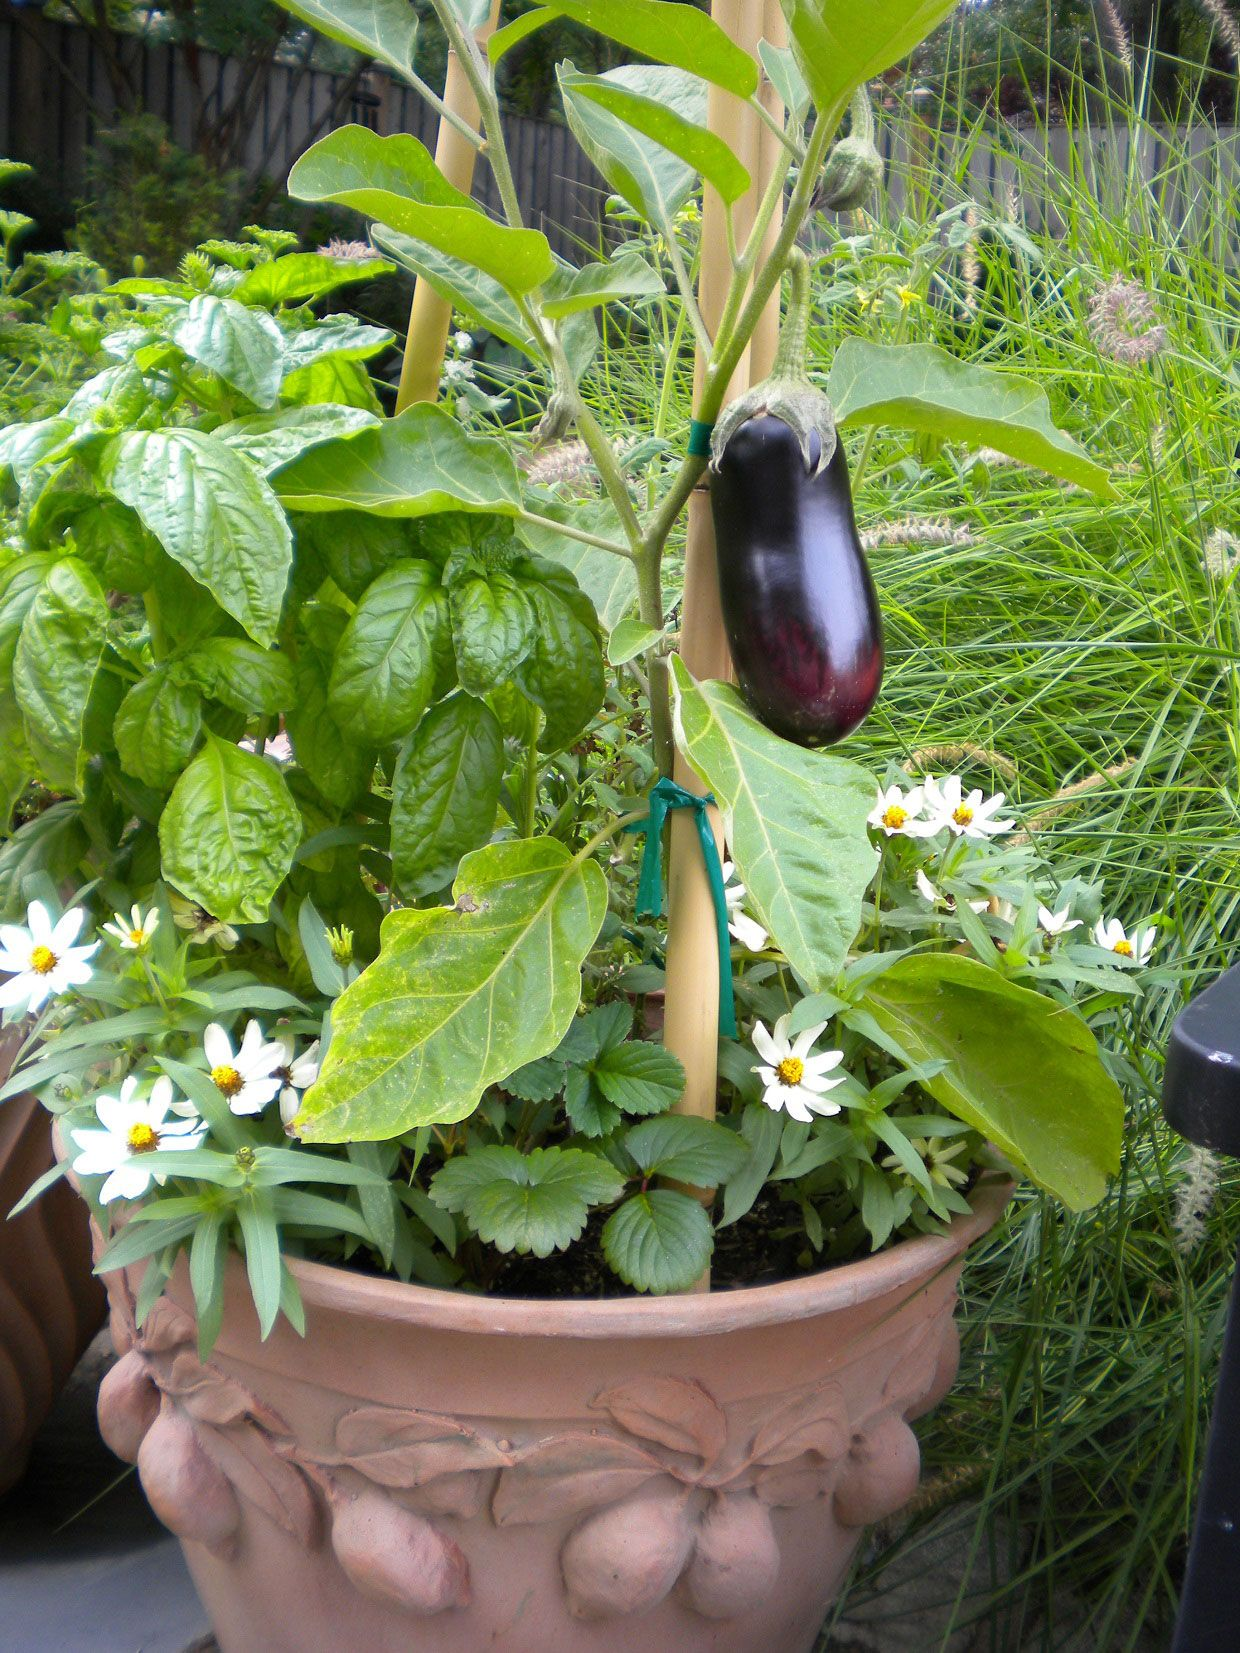 Potted Vegetable Garden Ideas Part - 37: Garden U0026 Landscaping, Inspiring Exterior Design With Container Gardening  Vegetables Of Eggplant In Ceramic Pot At Backyard ~ Creative Container  Vegetable ...